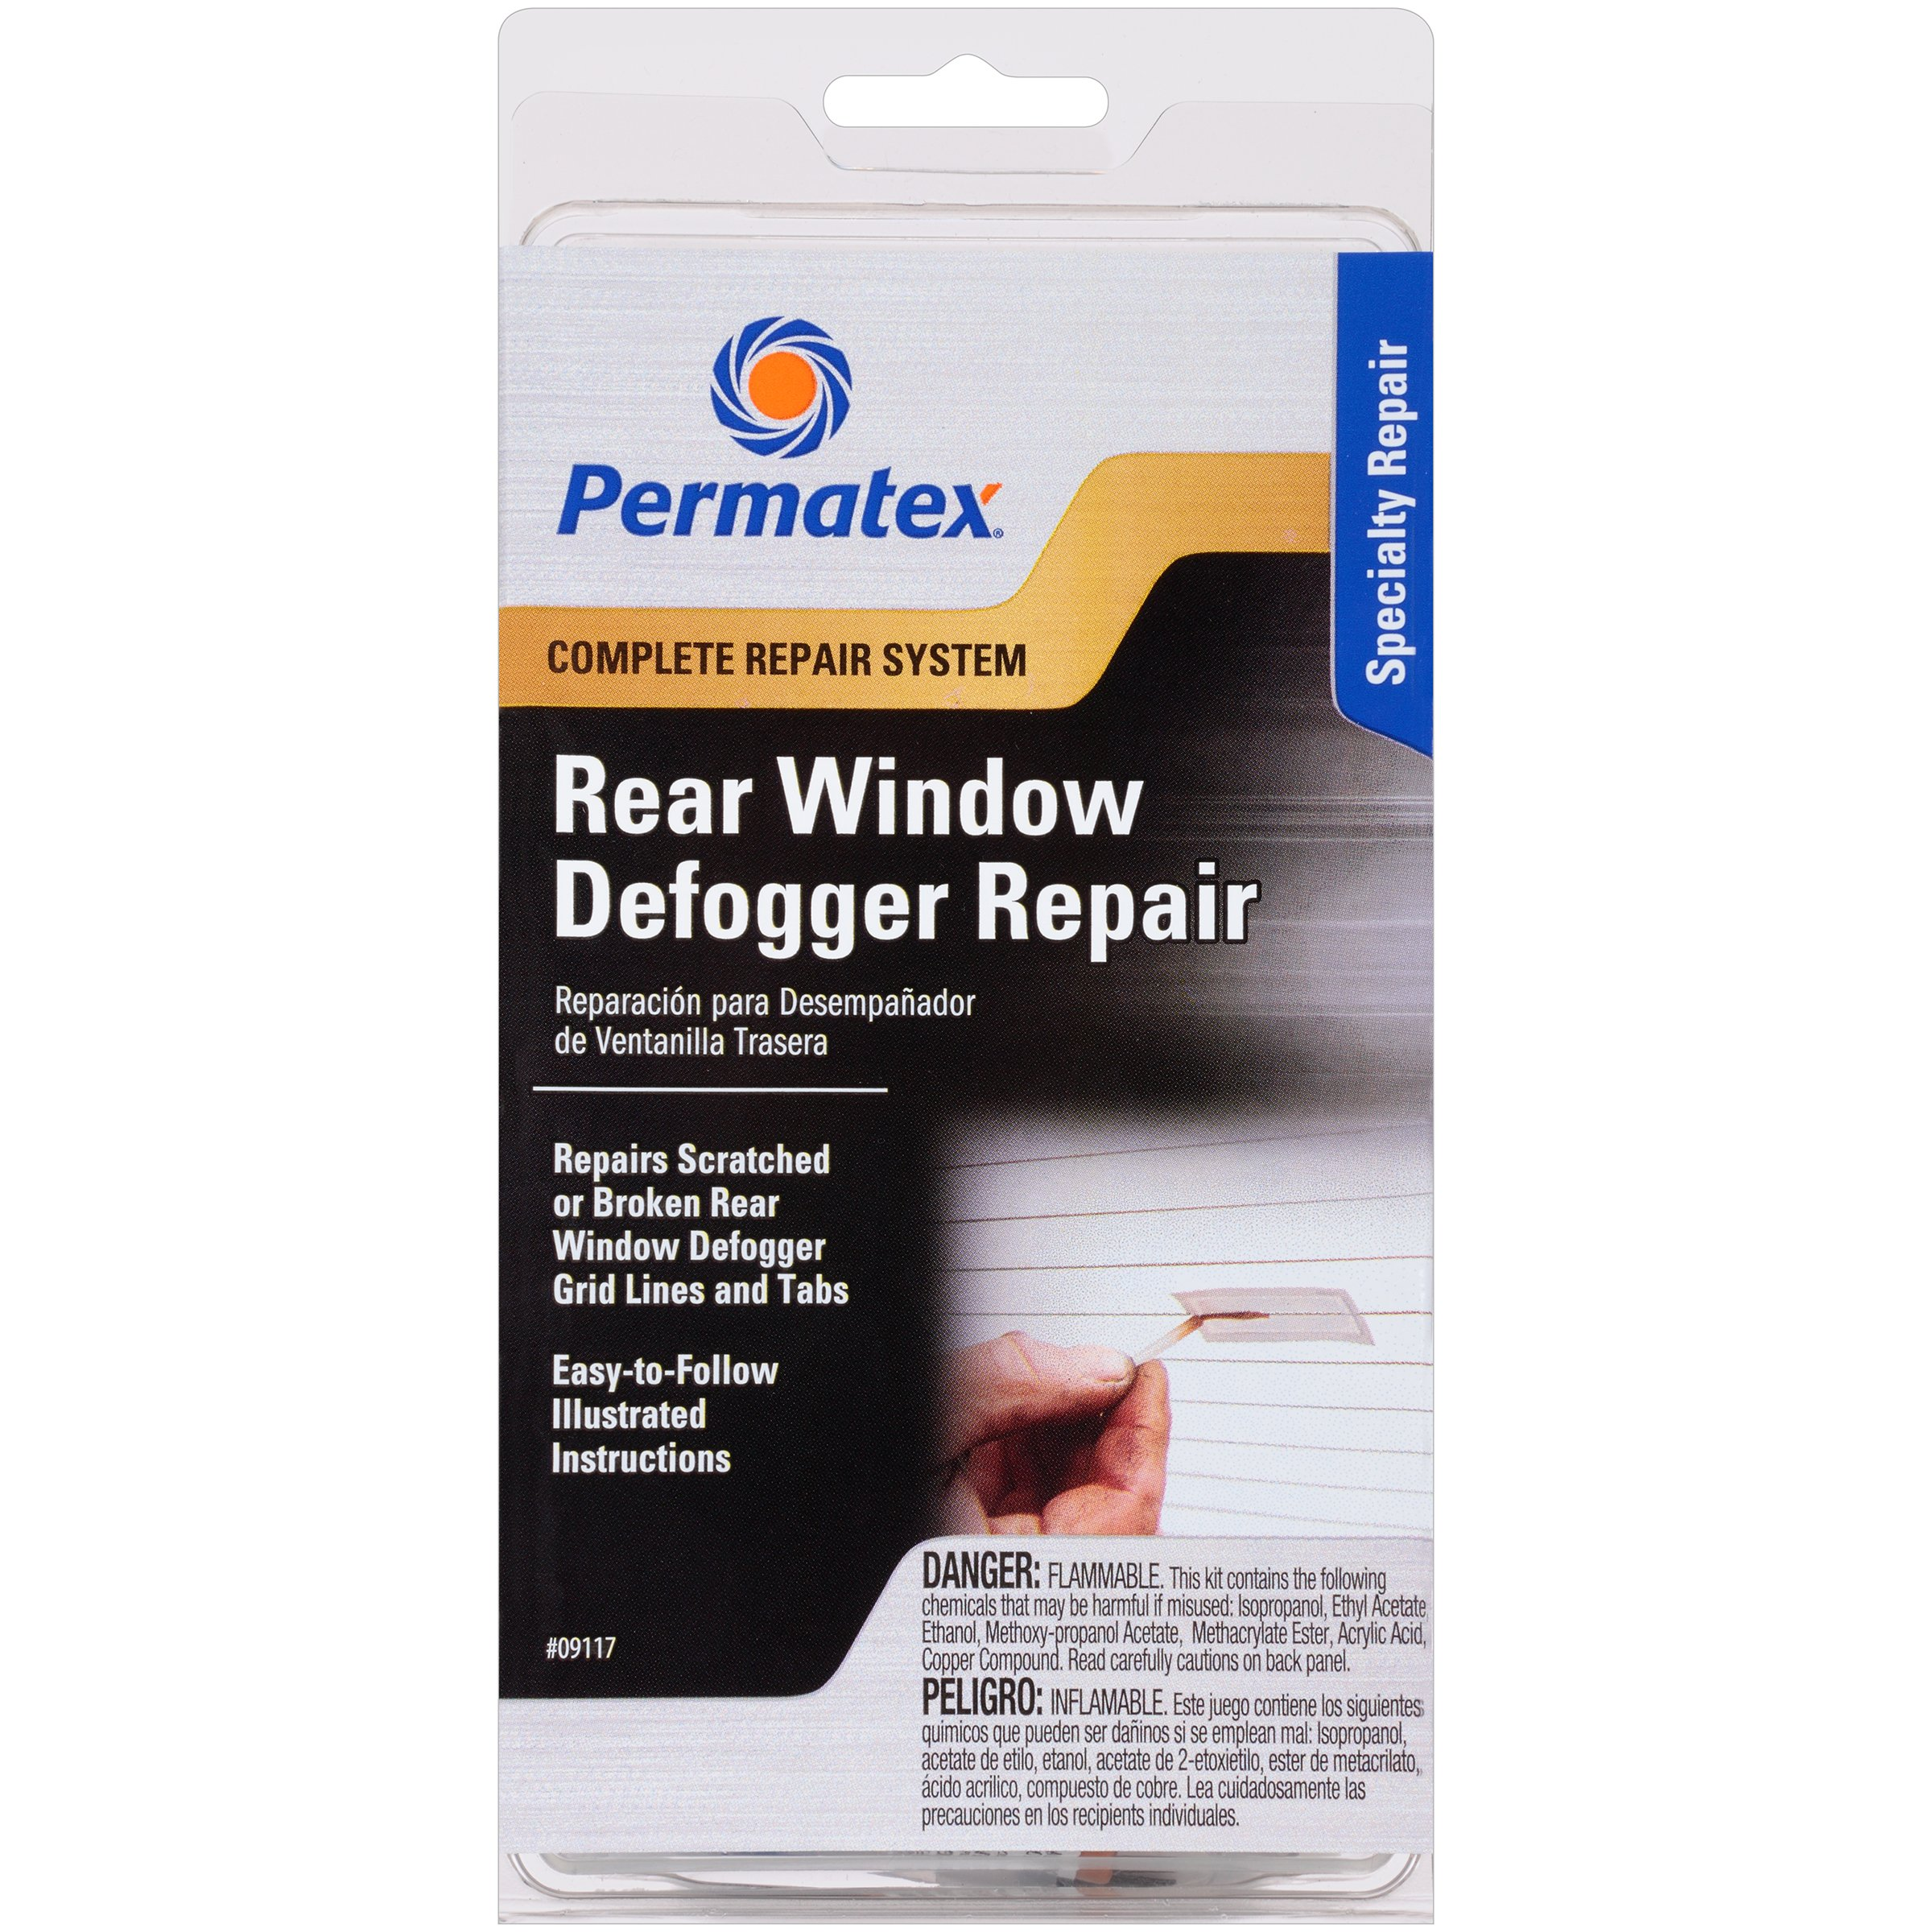 Permatex 09117-6PK Complete Rear Window Defogger Repair Kit (Pack of 6) by Permatex